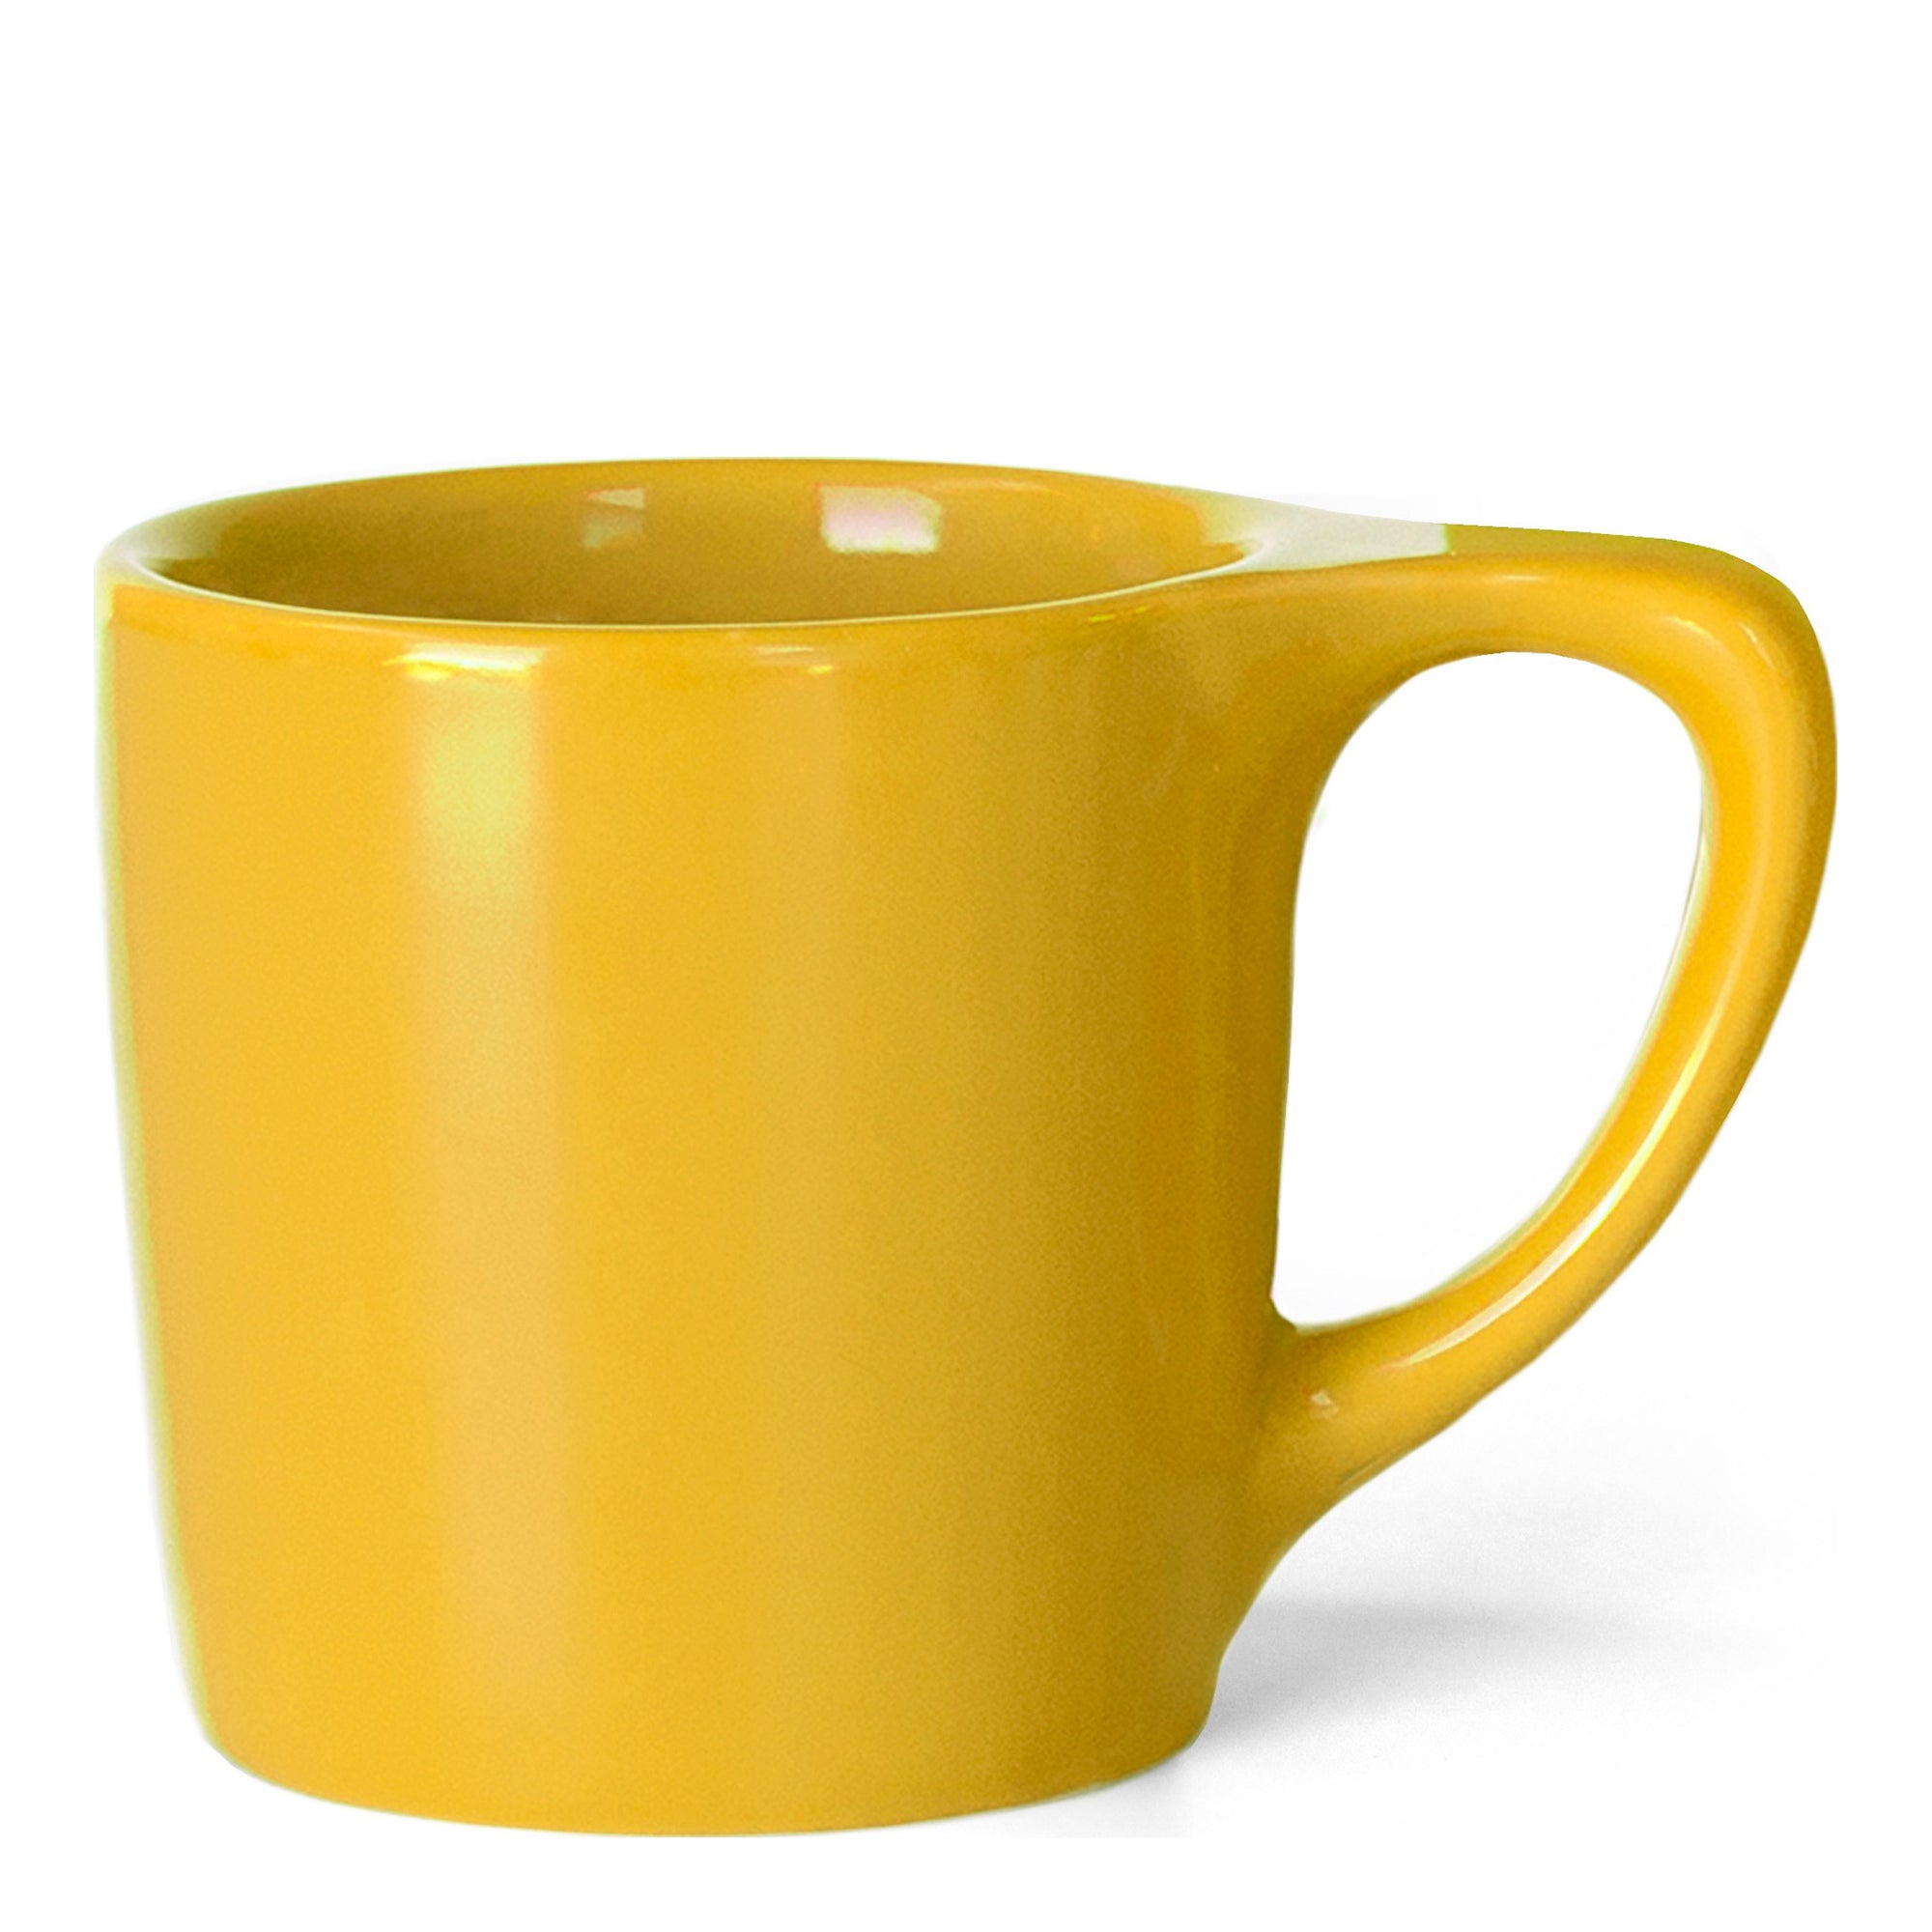 NN Mug Canary 10oz/30cl - Espresso Gear